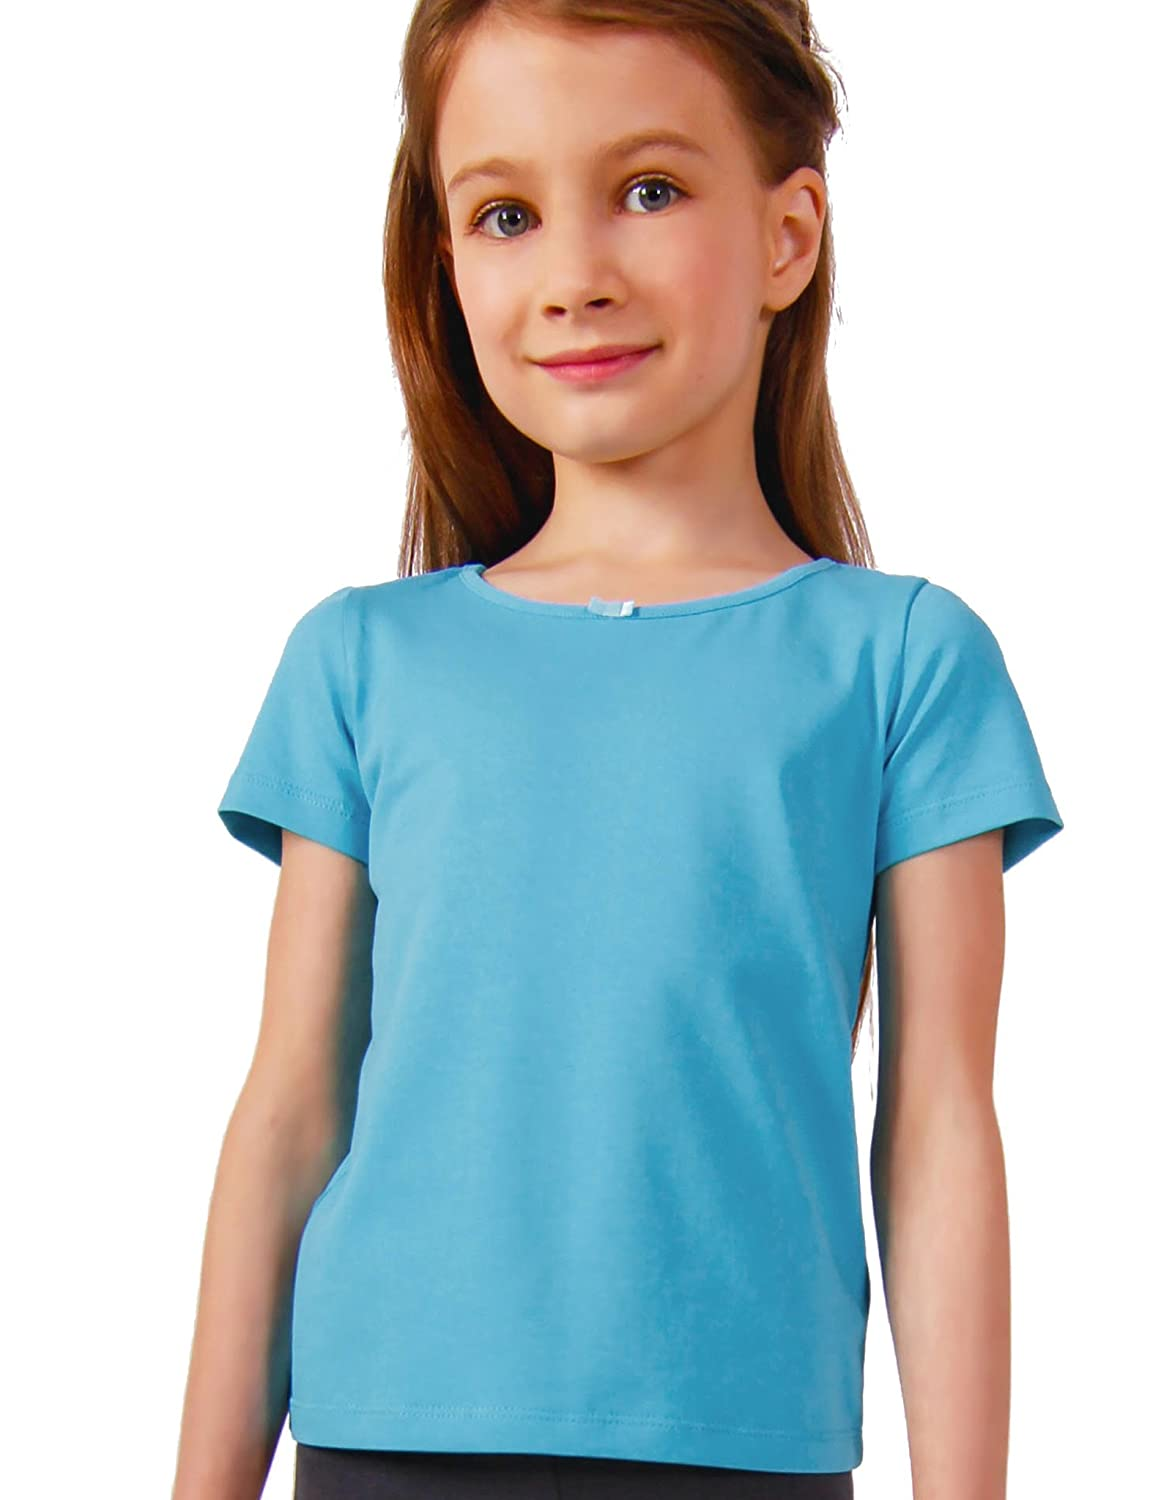 Petite Amelia Little Girls Short Sleeve Bow Top 10630-2L